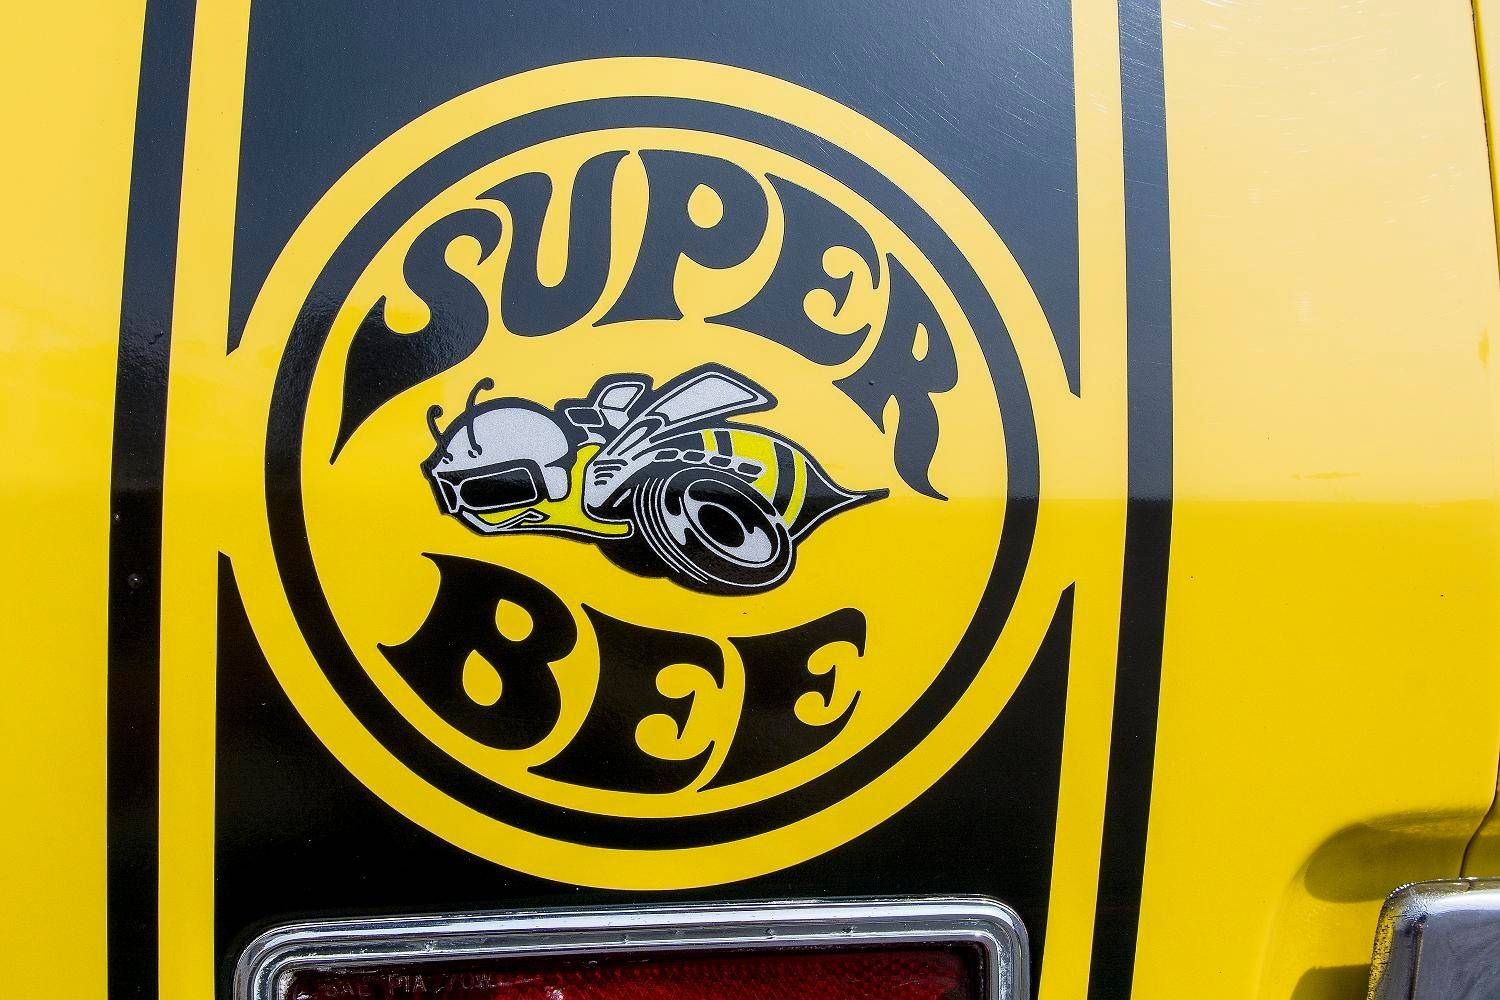 The Super Bee's front end was reportedly designed to mimic the look of bumble bee wings.